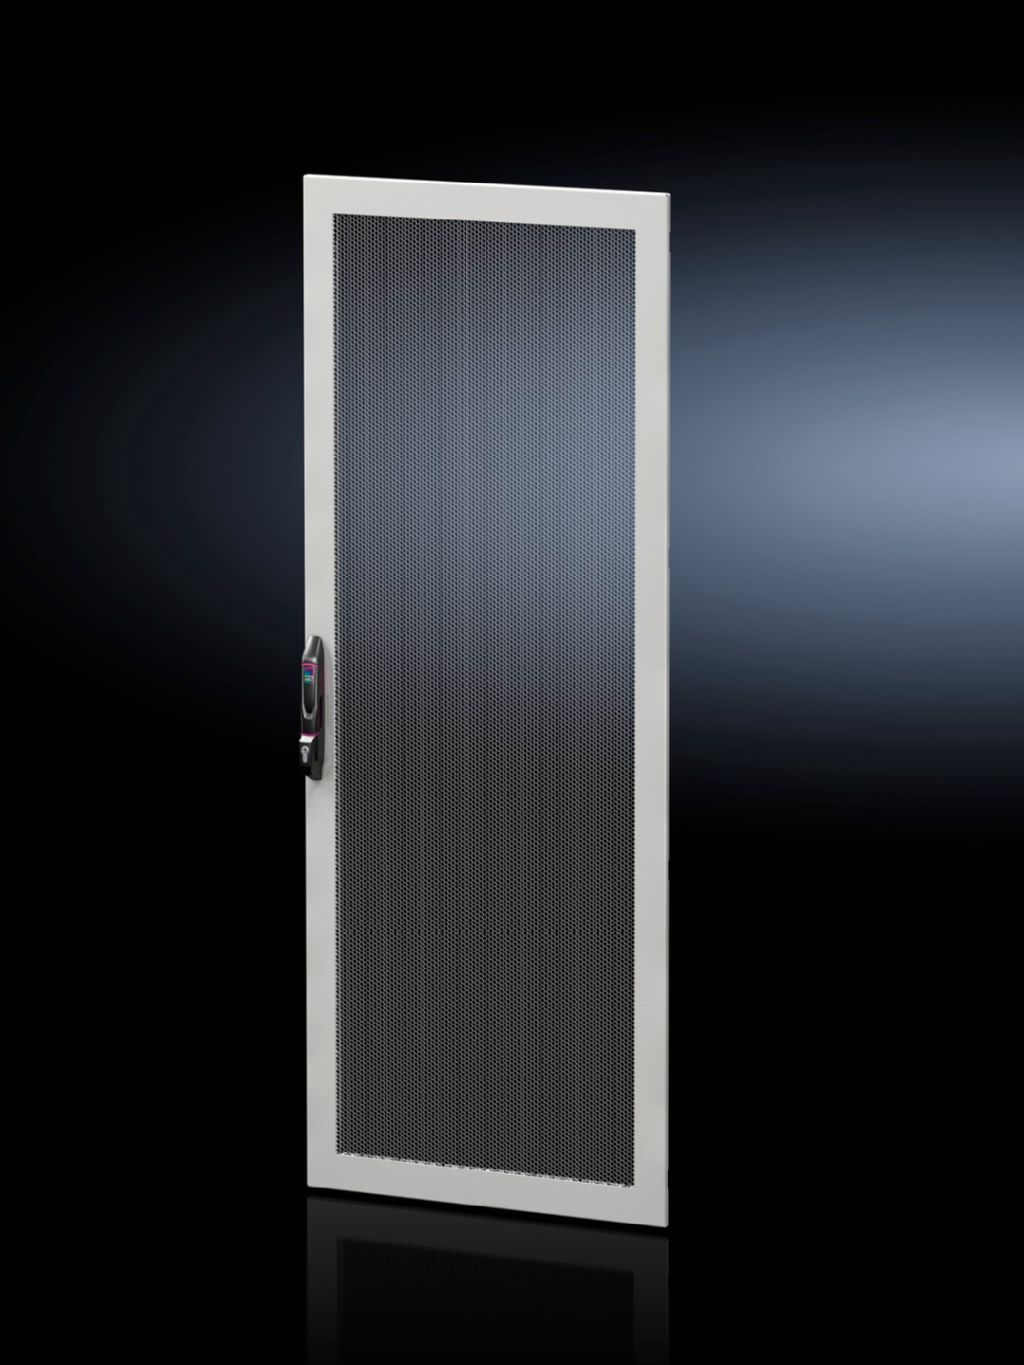 Sheet steel door, one-piece, vented for VX IT